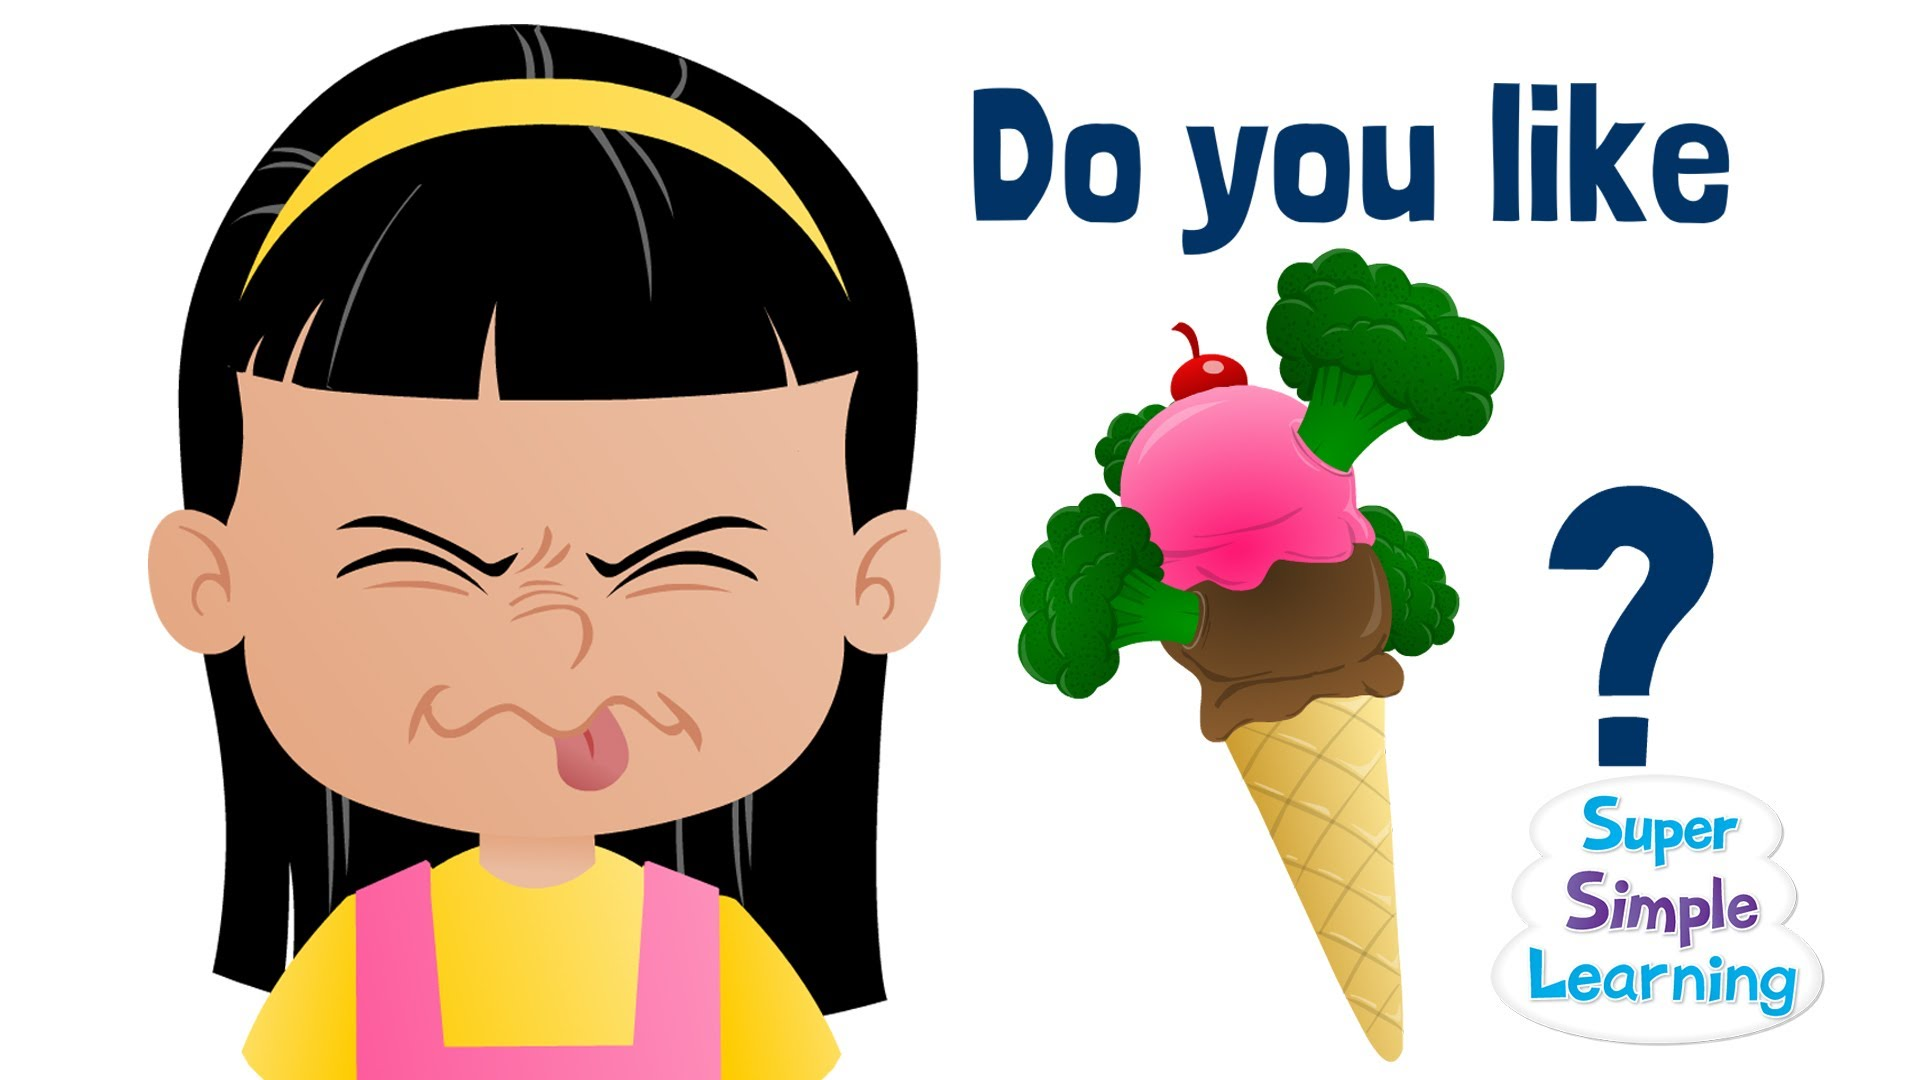 Imagen De Un Like: Do You Like Broccoli Ice Cream?